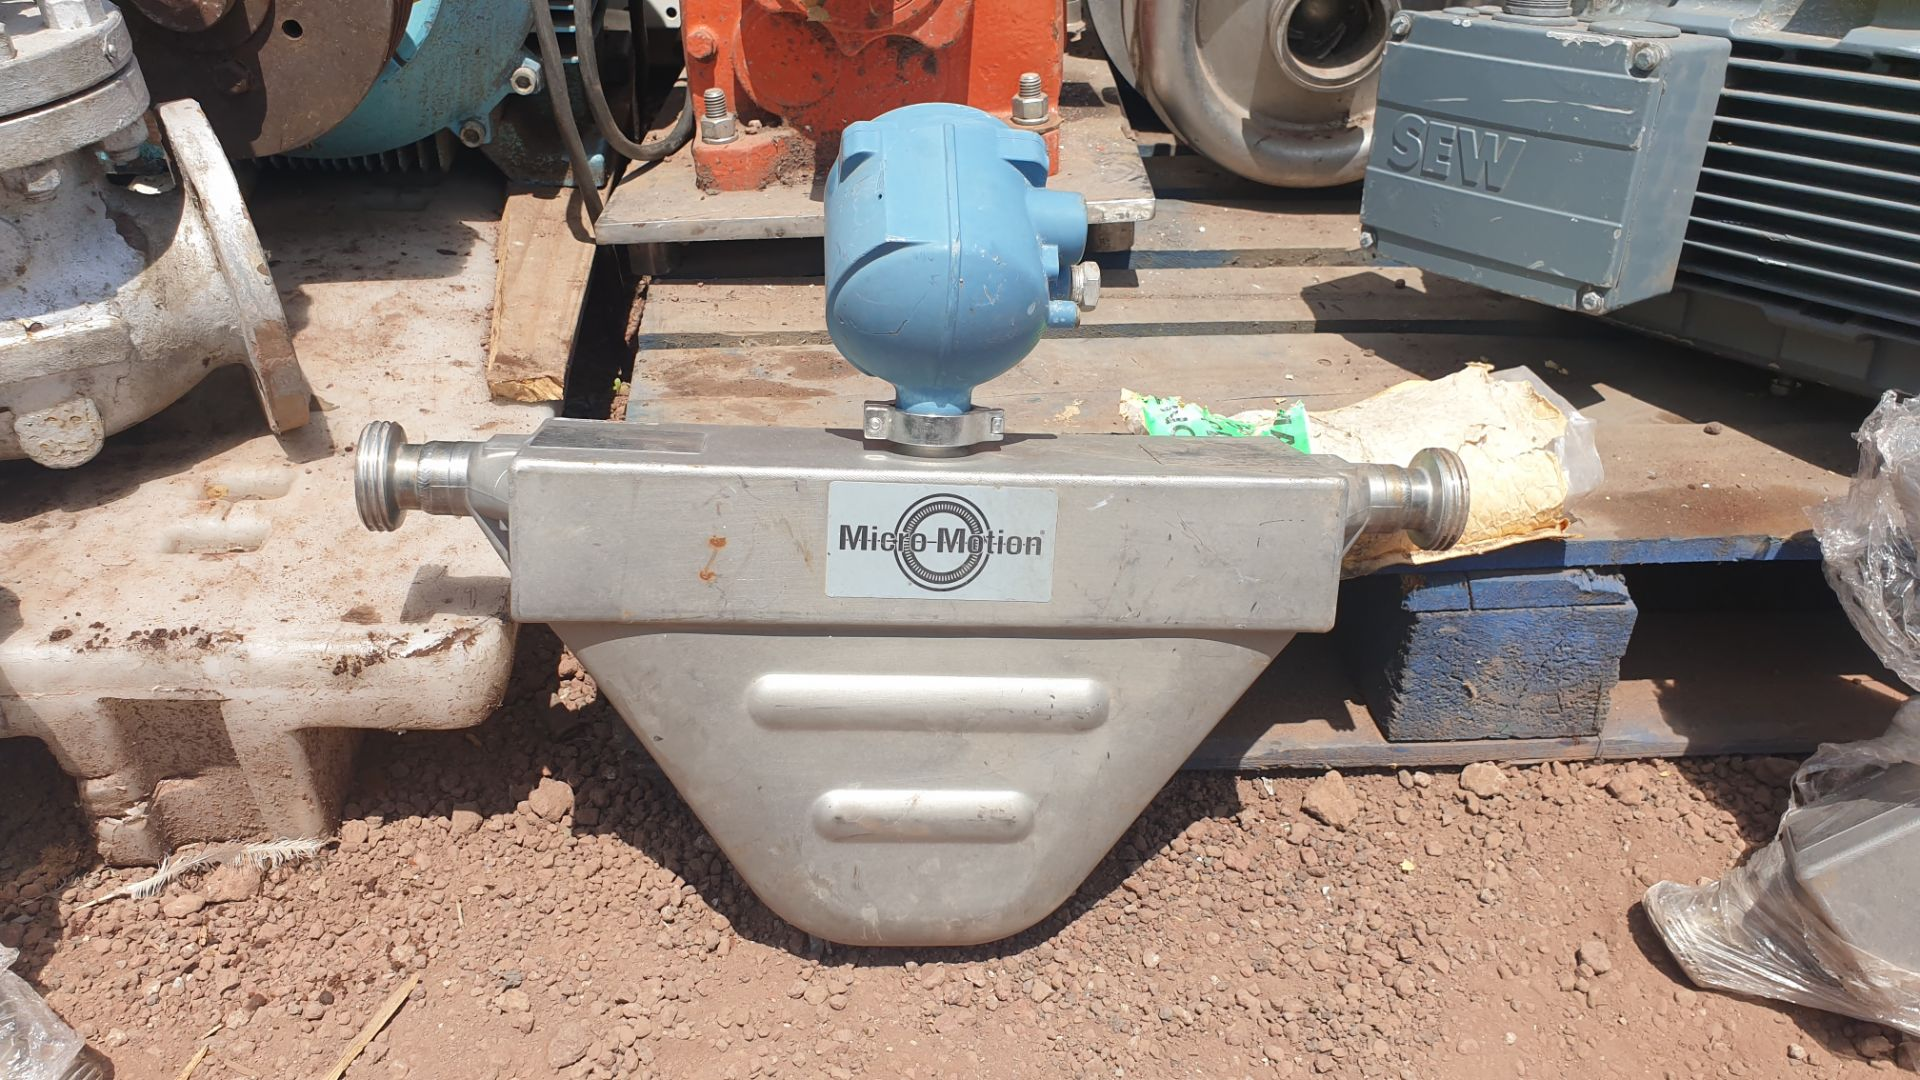 Micromotion Flow meter, model F100S230C2BMSZZZZ NS 14638390 2016 - Image 6 of 9